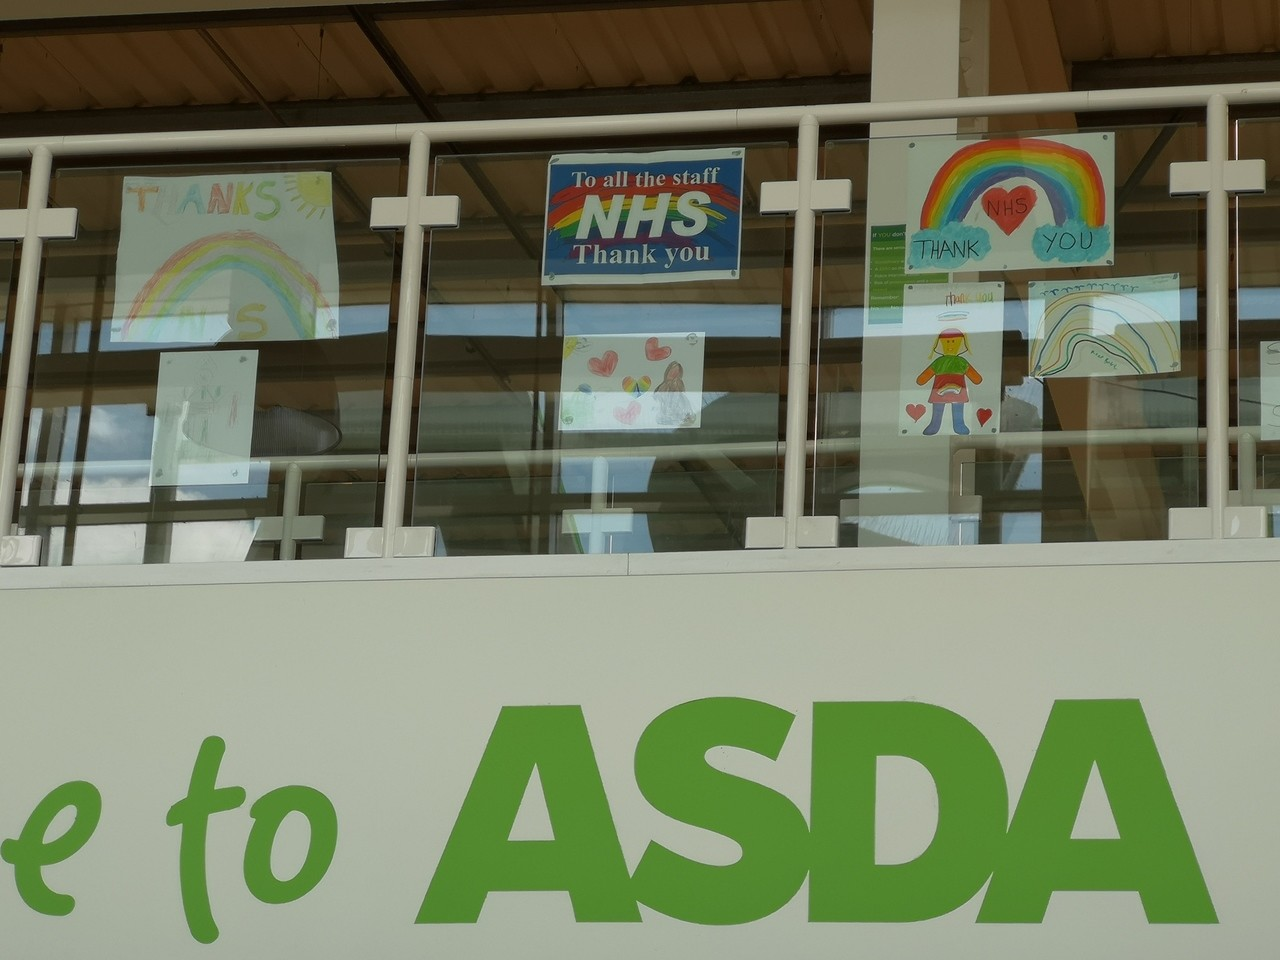 Thank you NHS | Asda Long Eaton